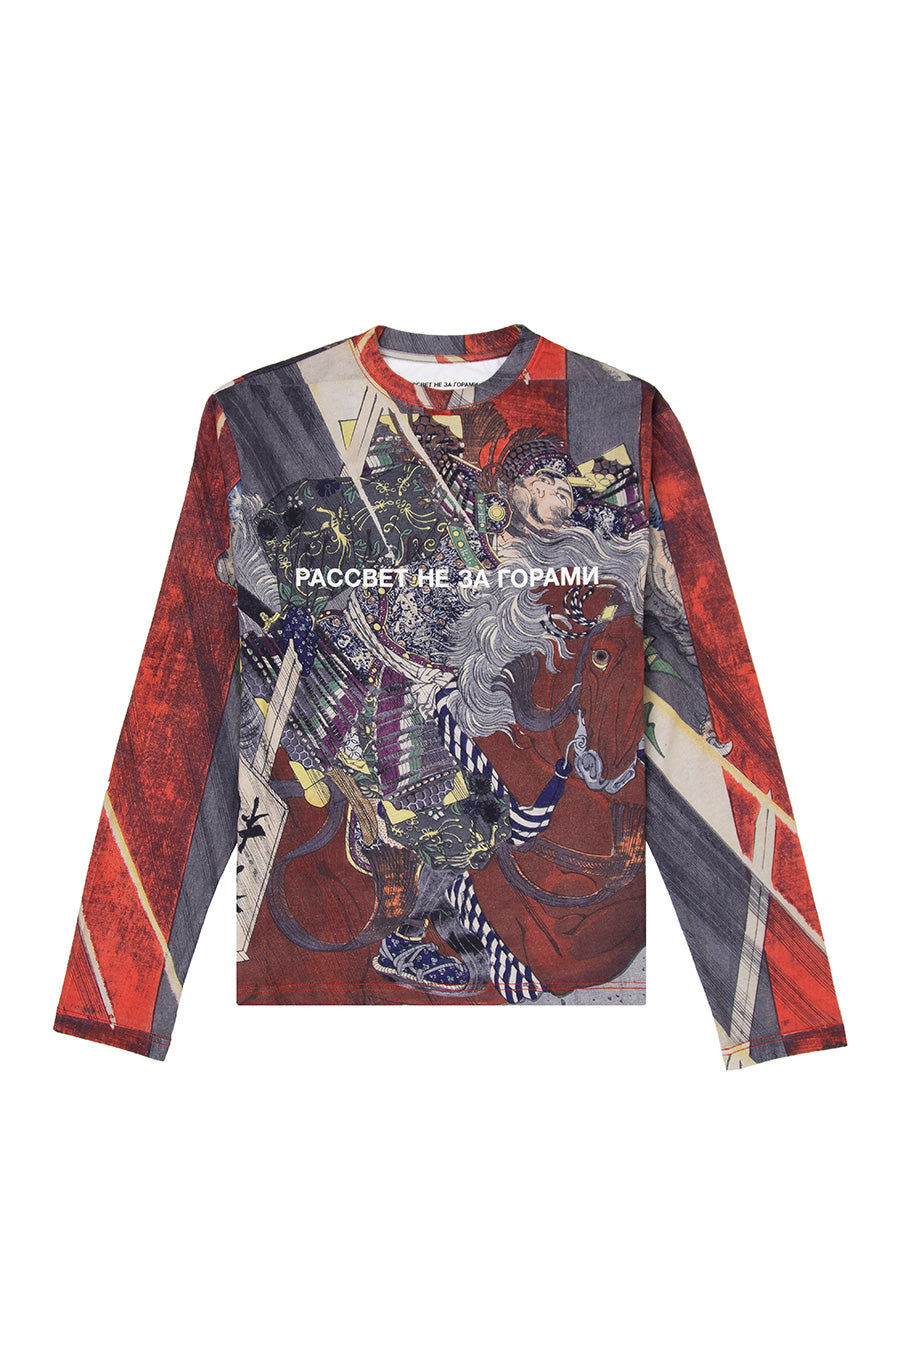 Rassvet - Multi Color Men's Long Sleeve T-Shirt | 1032 SPACE